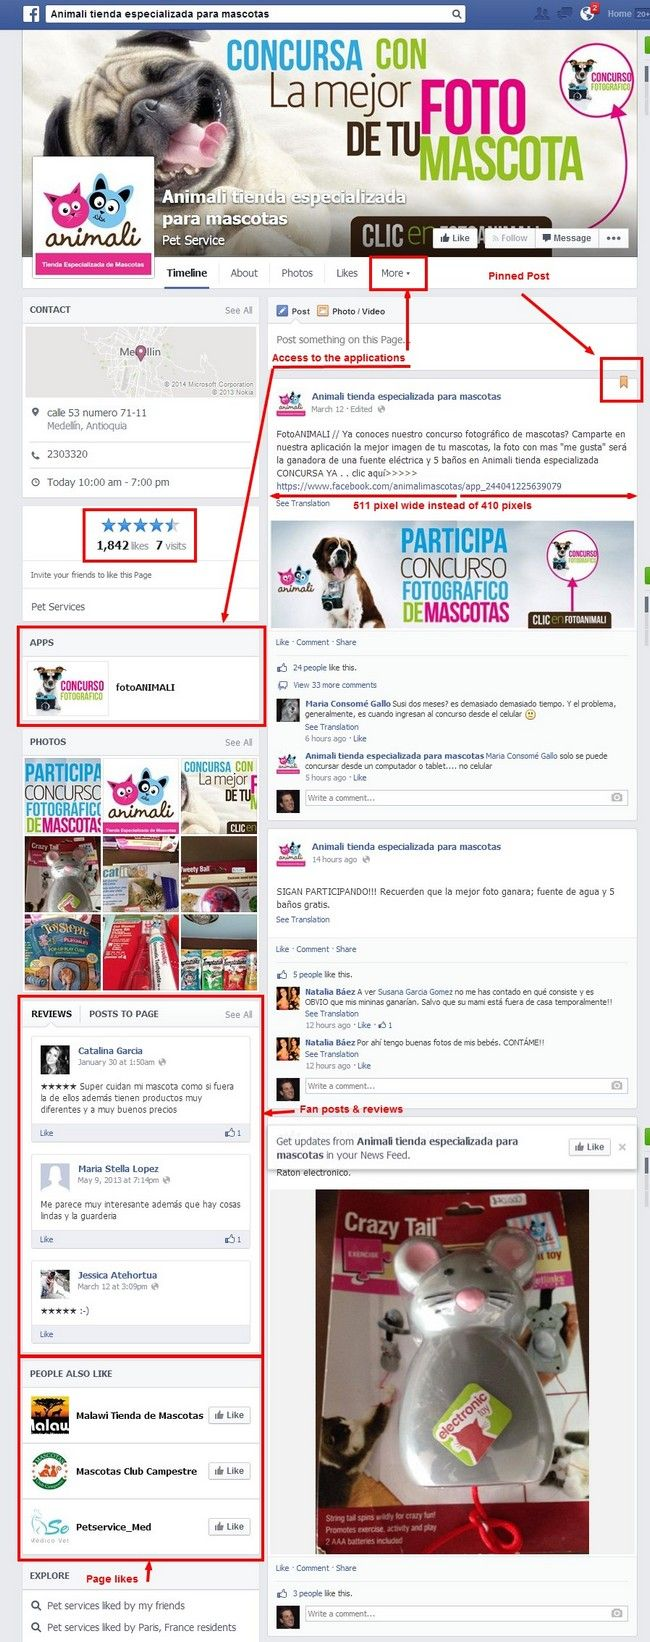 Facebook page redesign: the good, the bad and the ugly. All you need to know #Facebook #BusinessPages